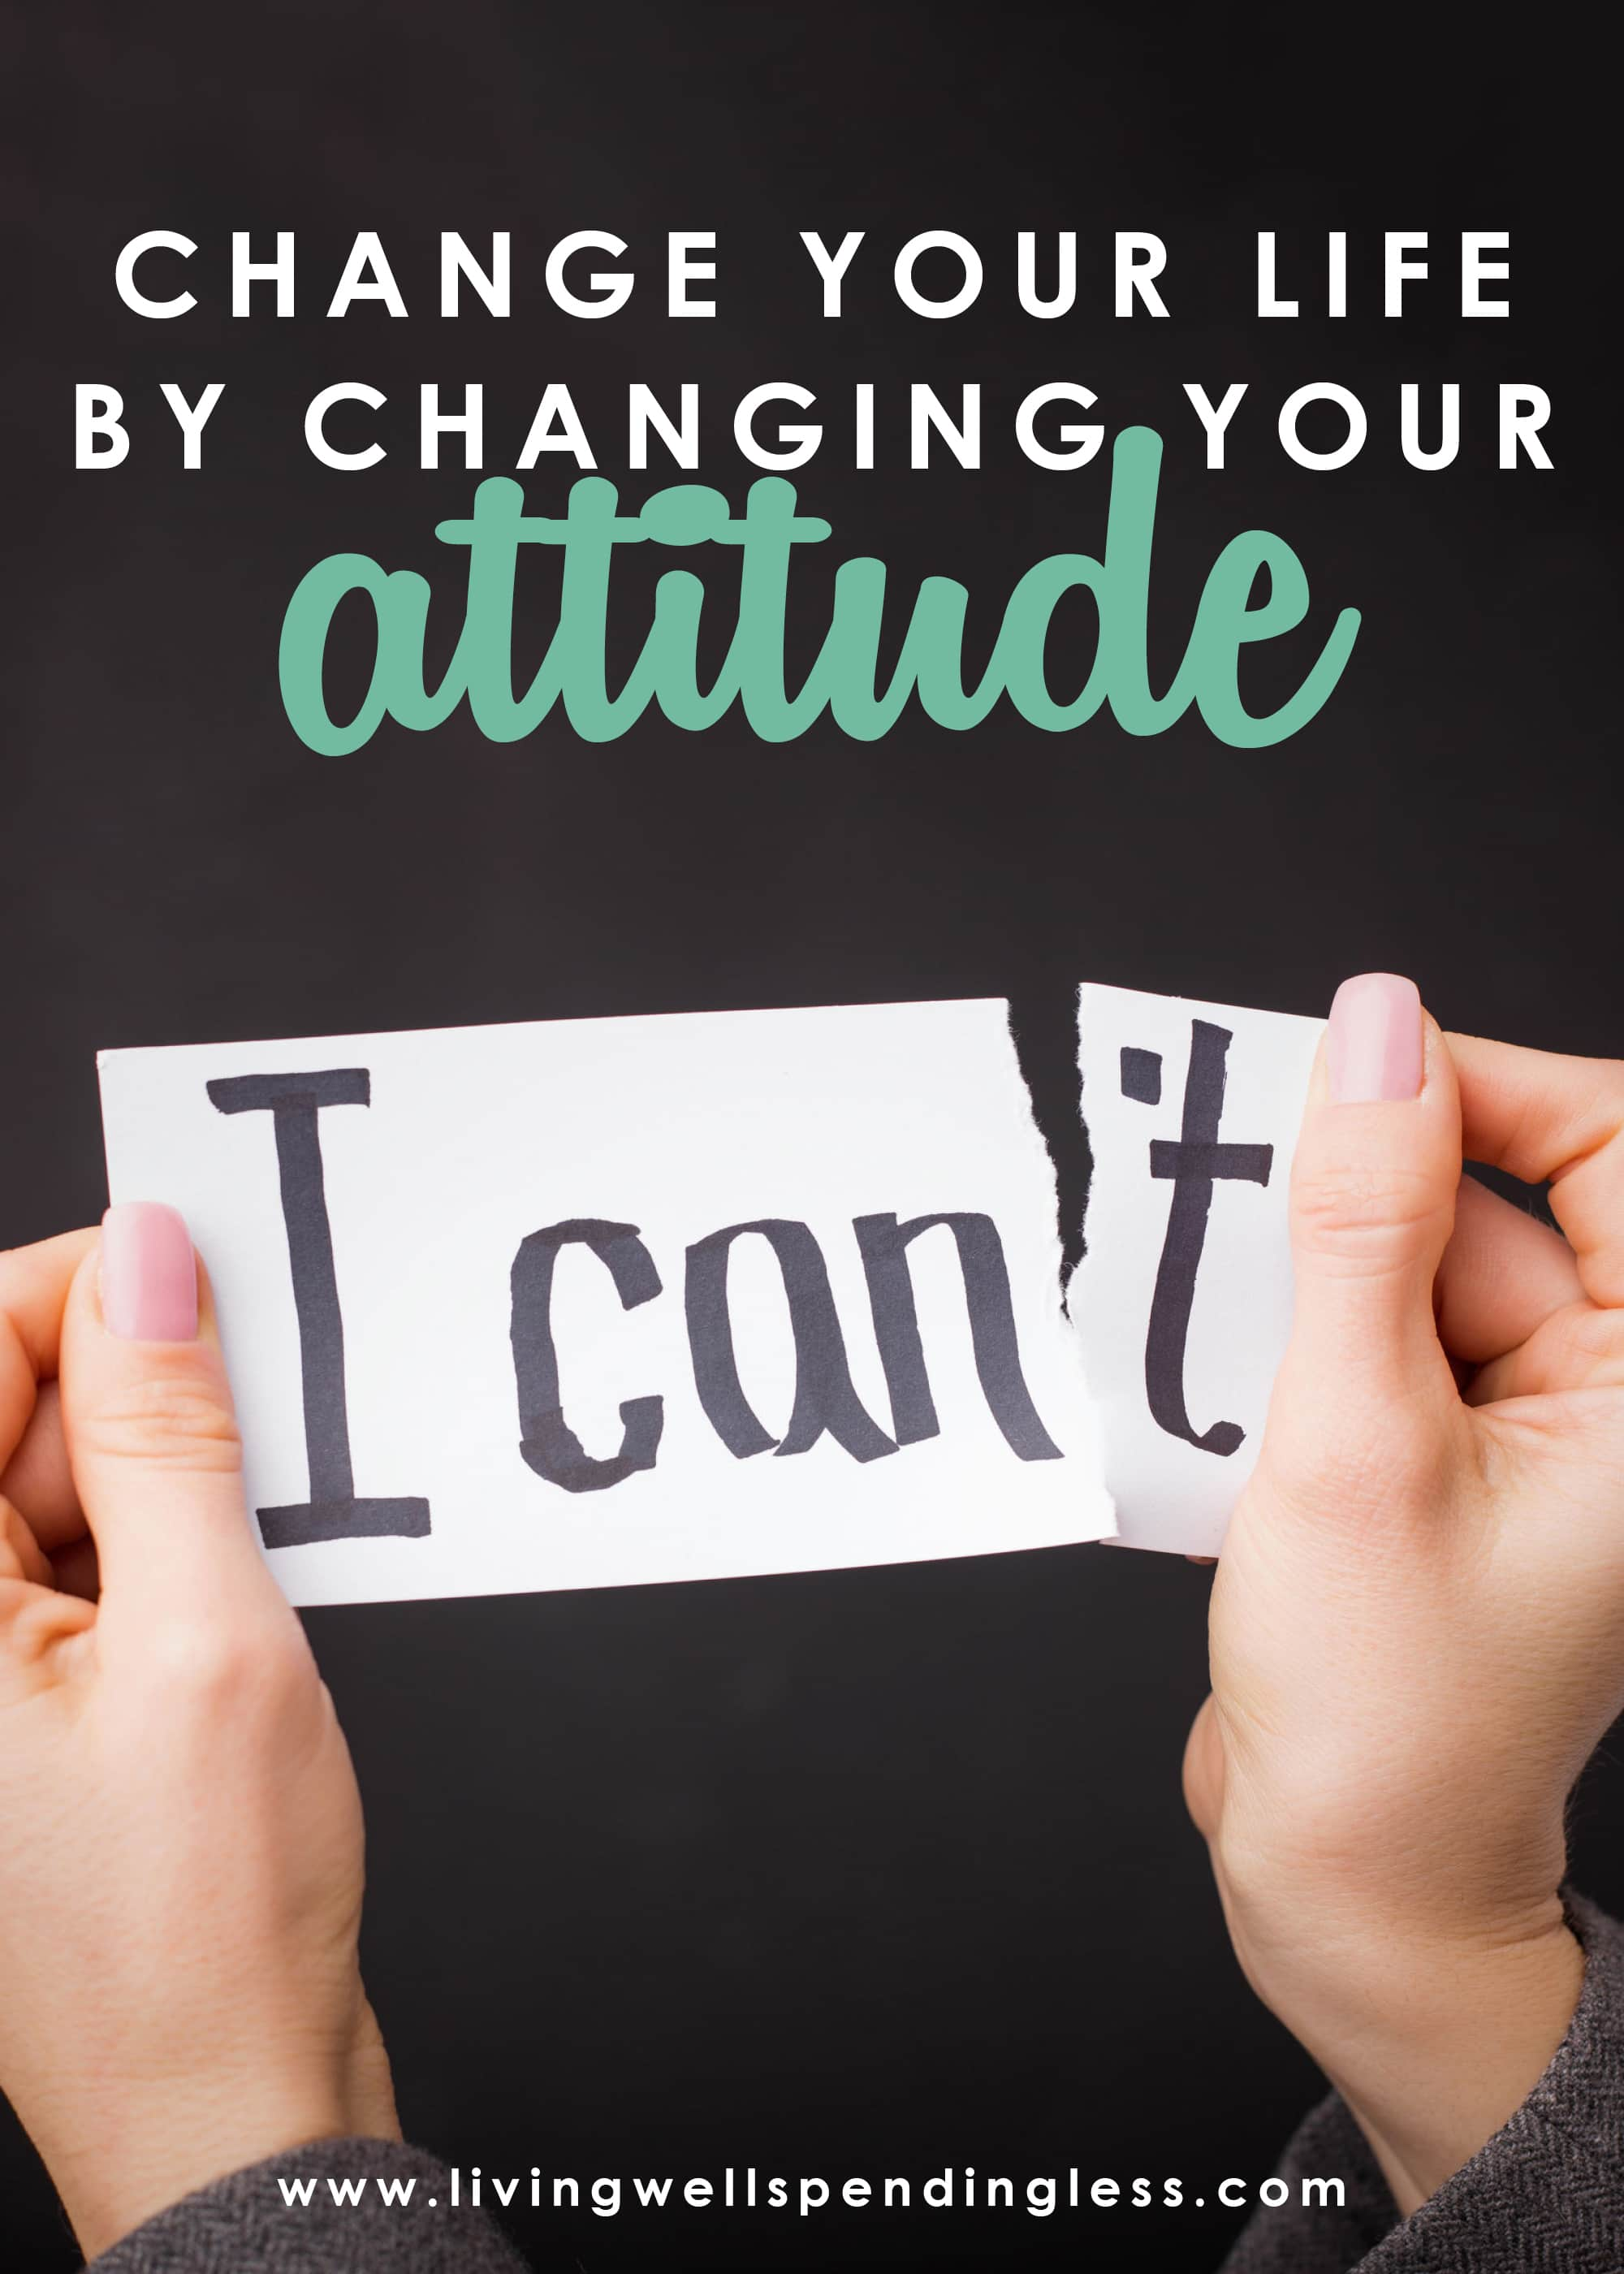 Change your life by changing your attitude.